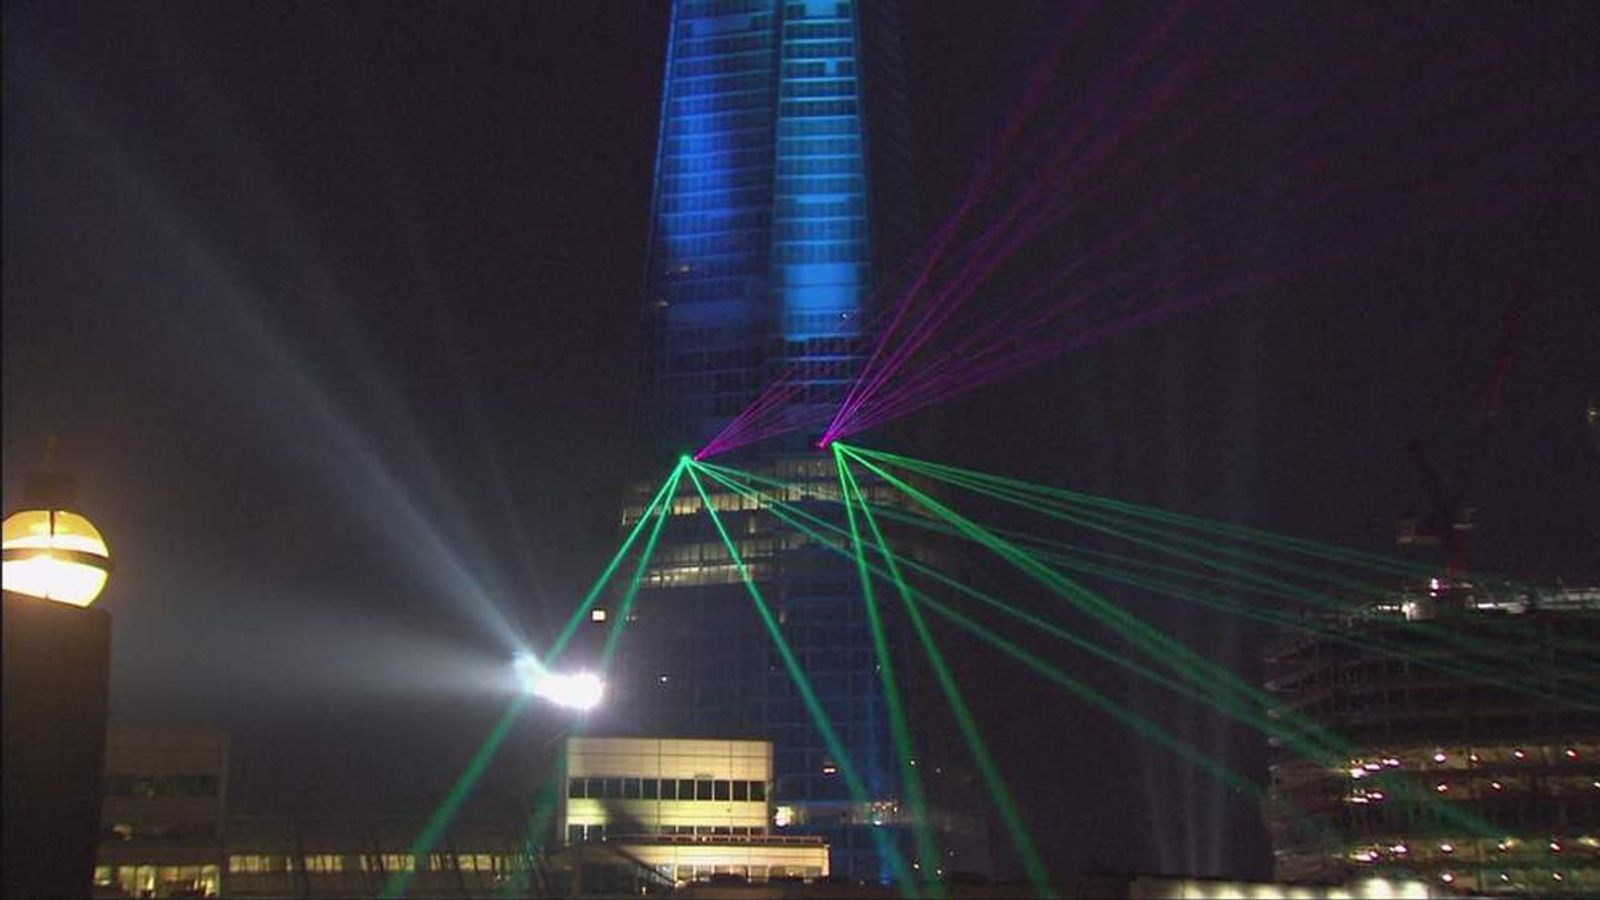 Purple and green lasers dart across the London Sky as the shard is in blue